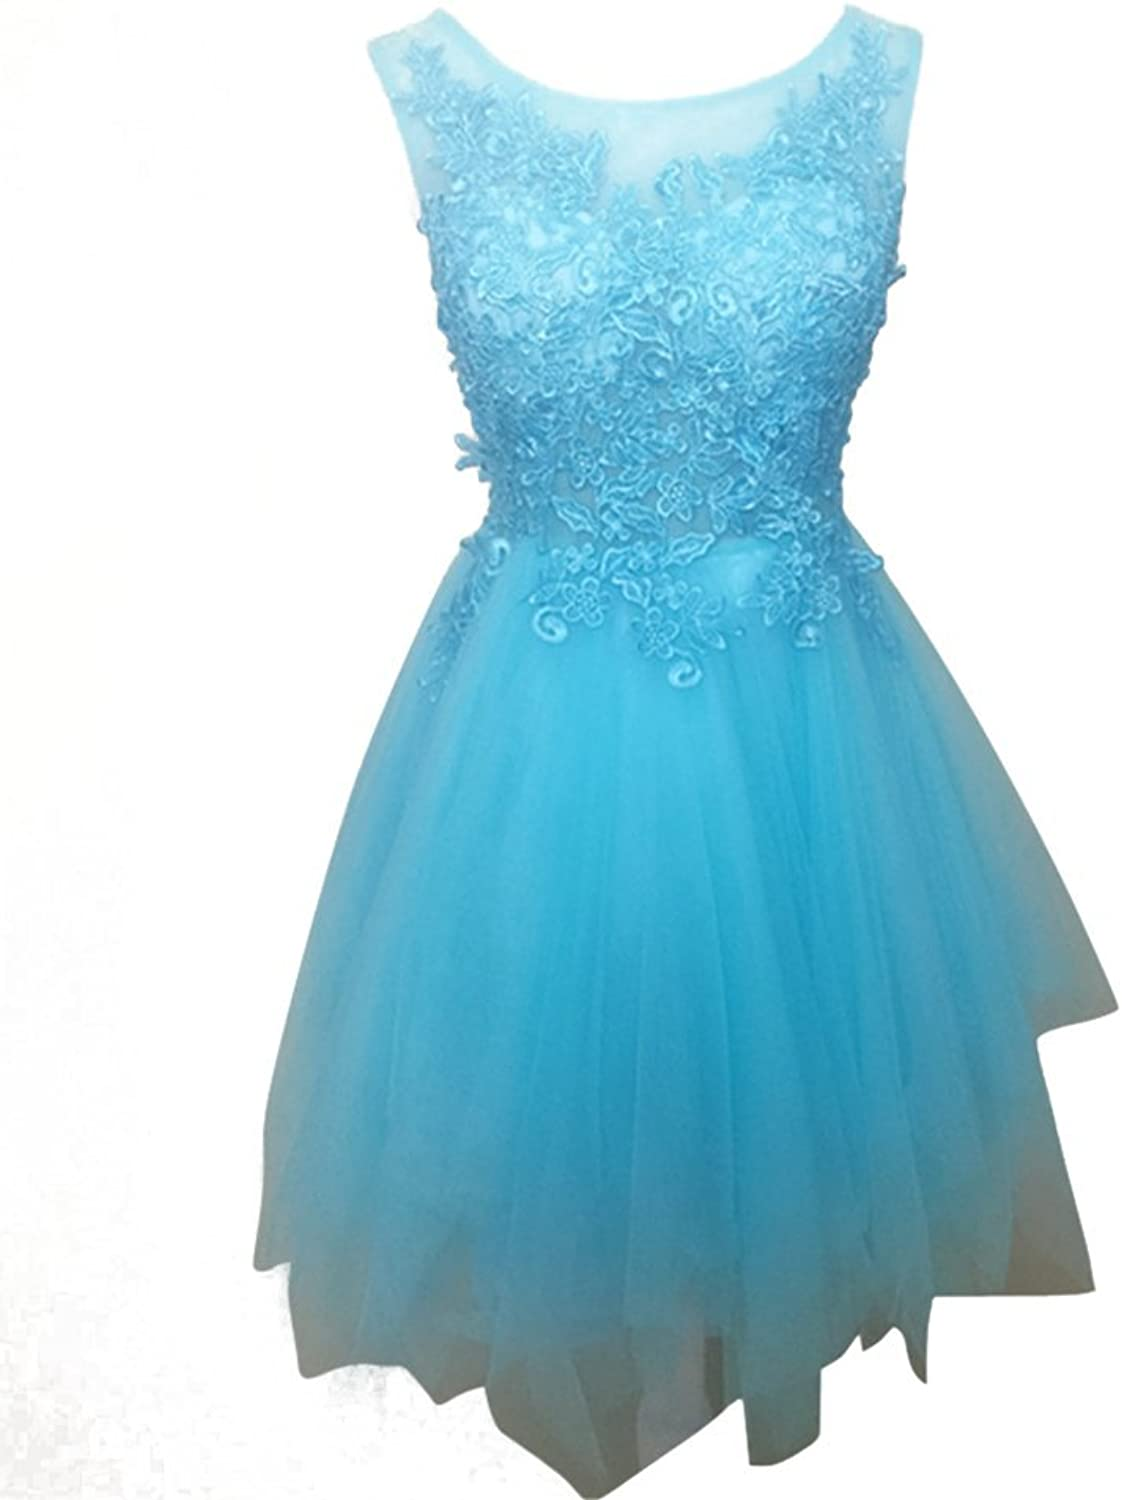 Drasawee Women's Short Organza Homecoming Prom Party Dress Formal Gowns Sky bluee US10